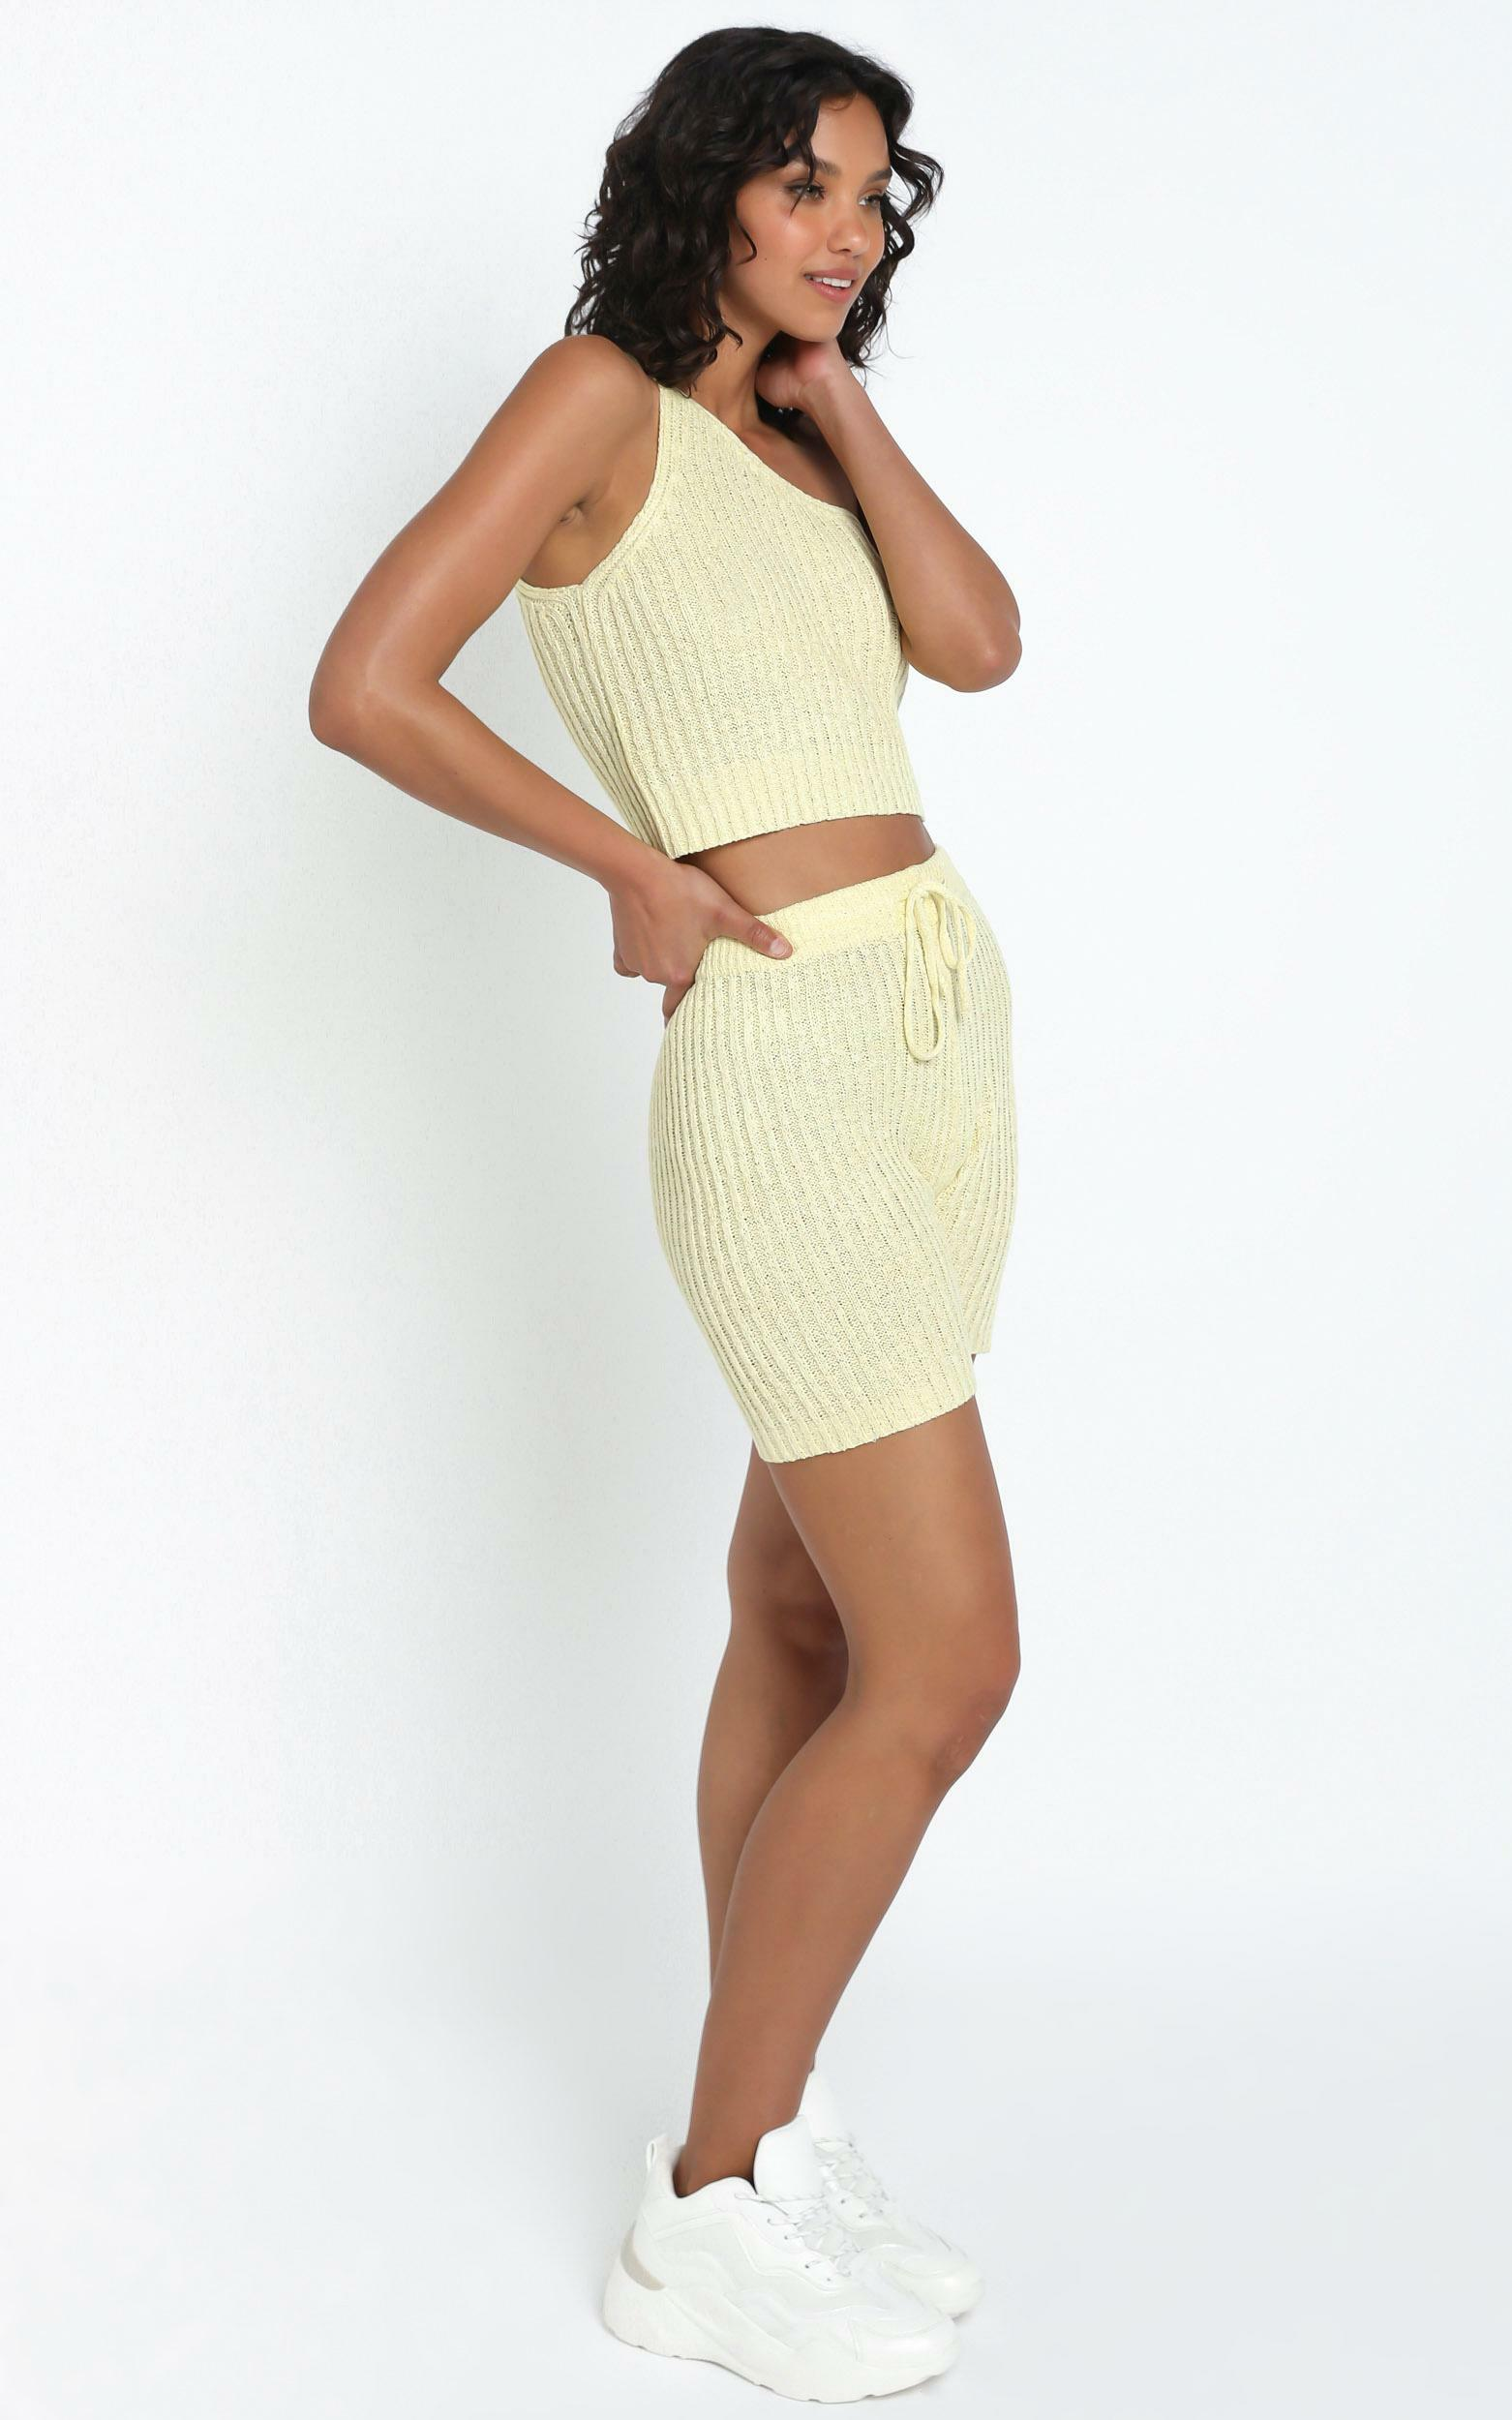 Kerry Knit Shorts in Yellow - L, Yellow, hi-res image number null